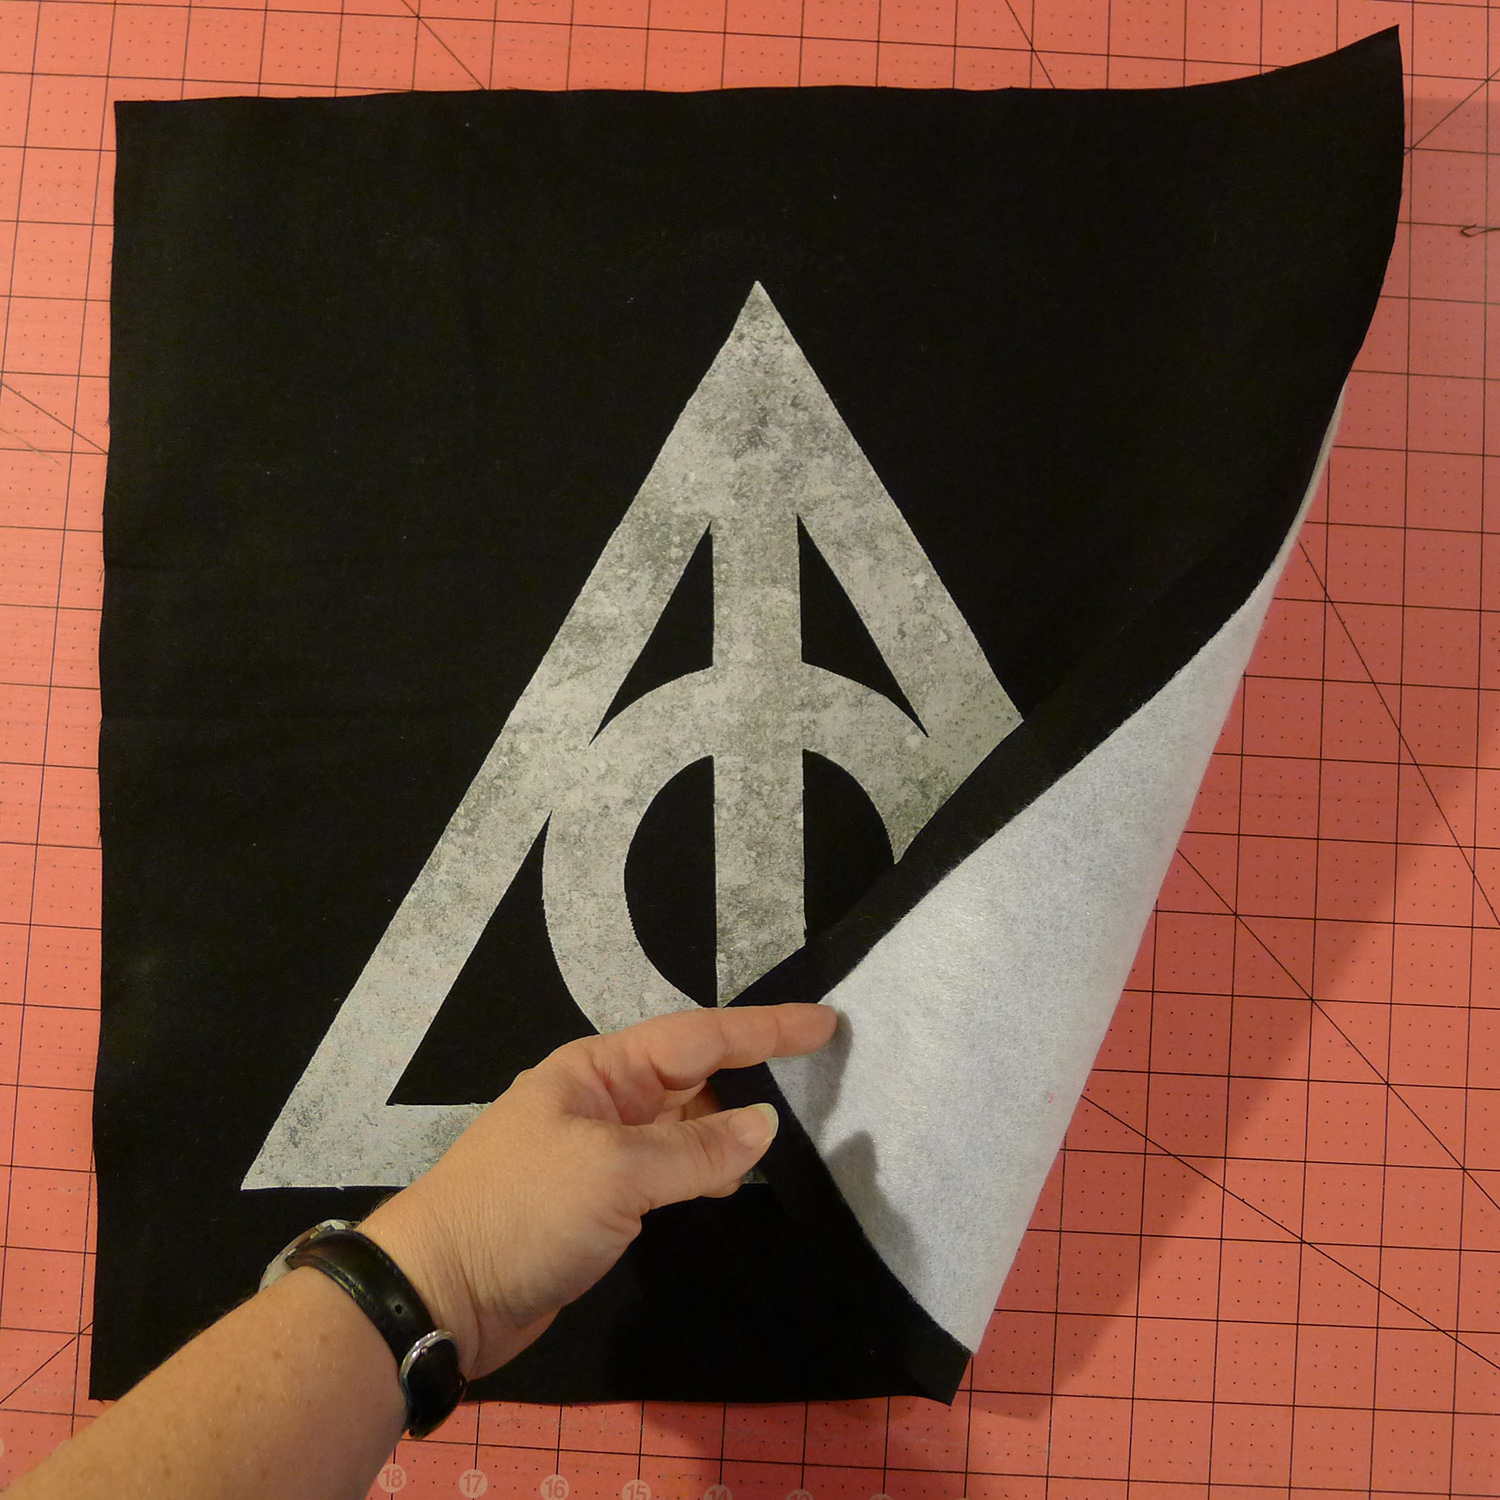 Harry Potter Deathly Hallows Pillow Fairfield World Craft Projects